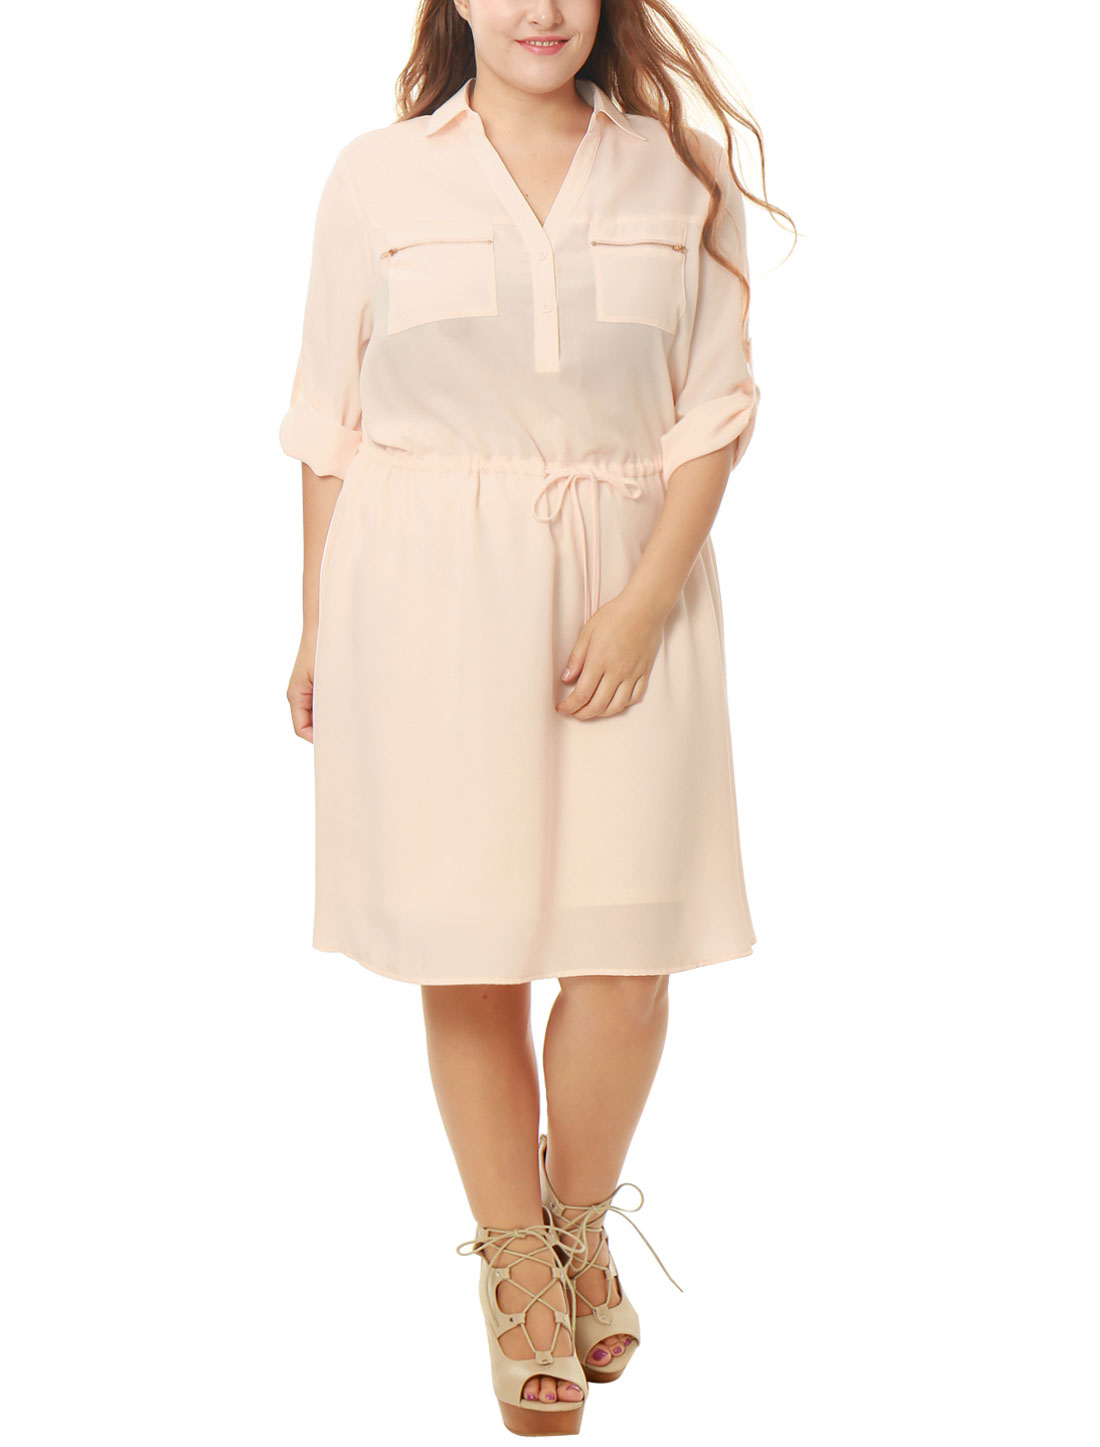 Women Plus Size Drawstring Waist Roll Up Sleeves Dress Pink 1X